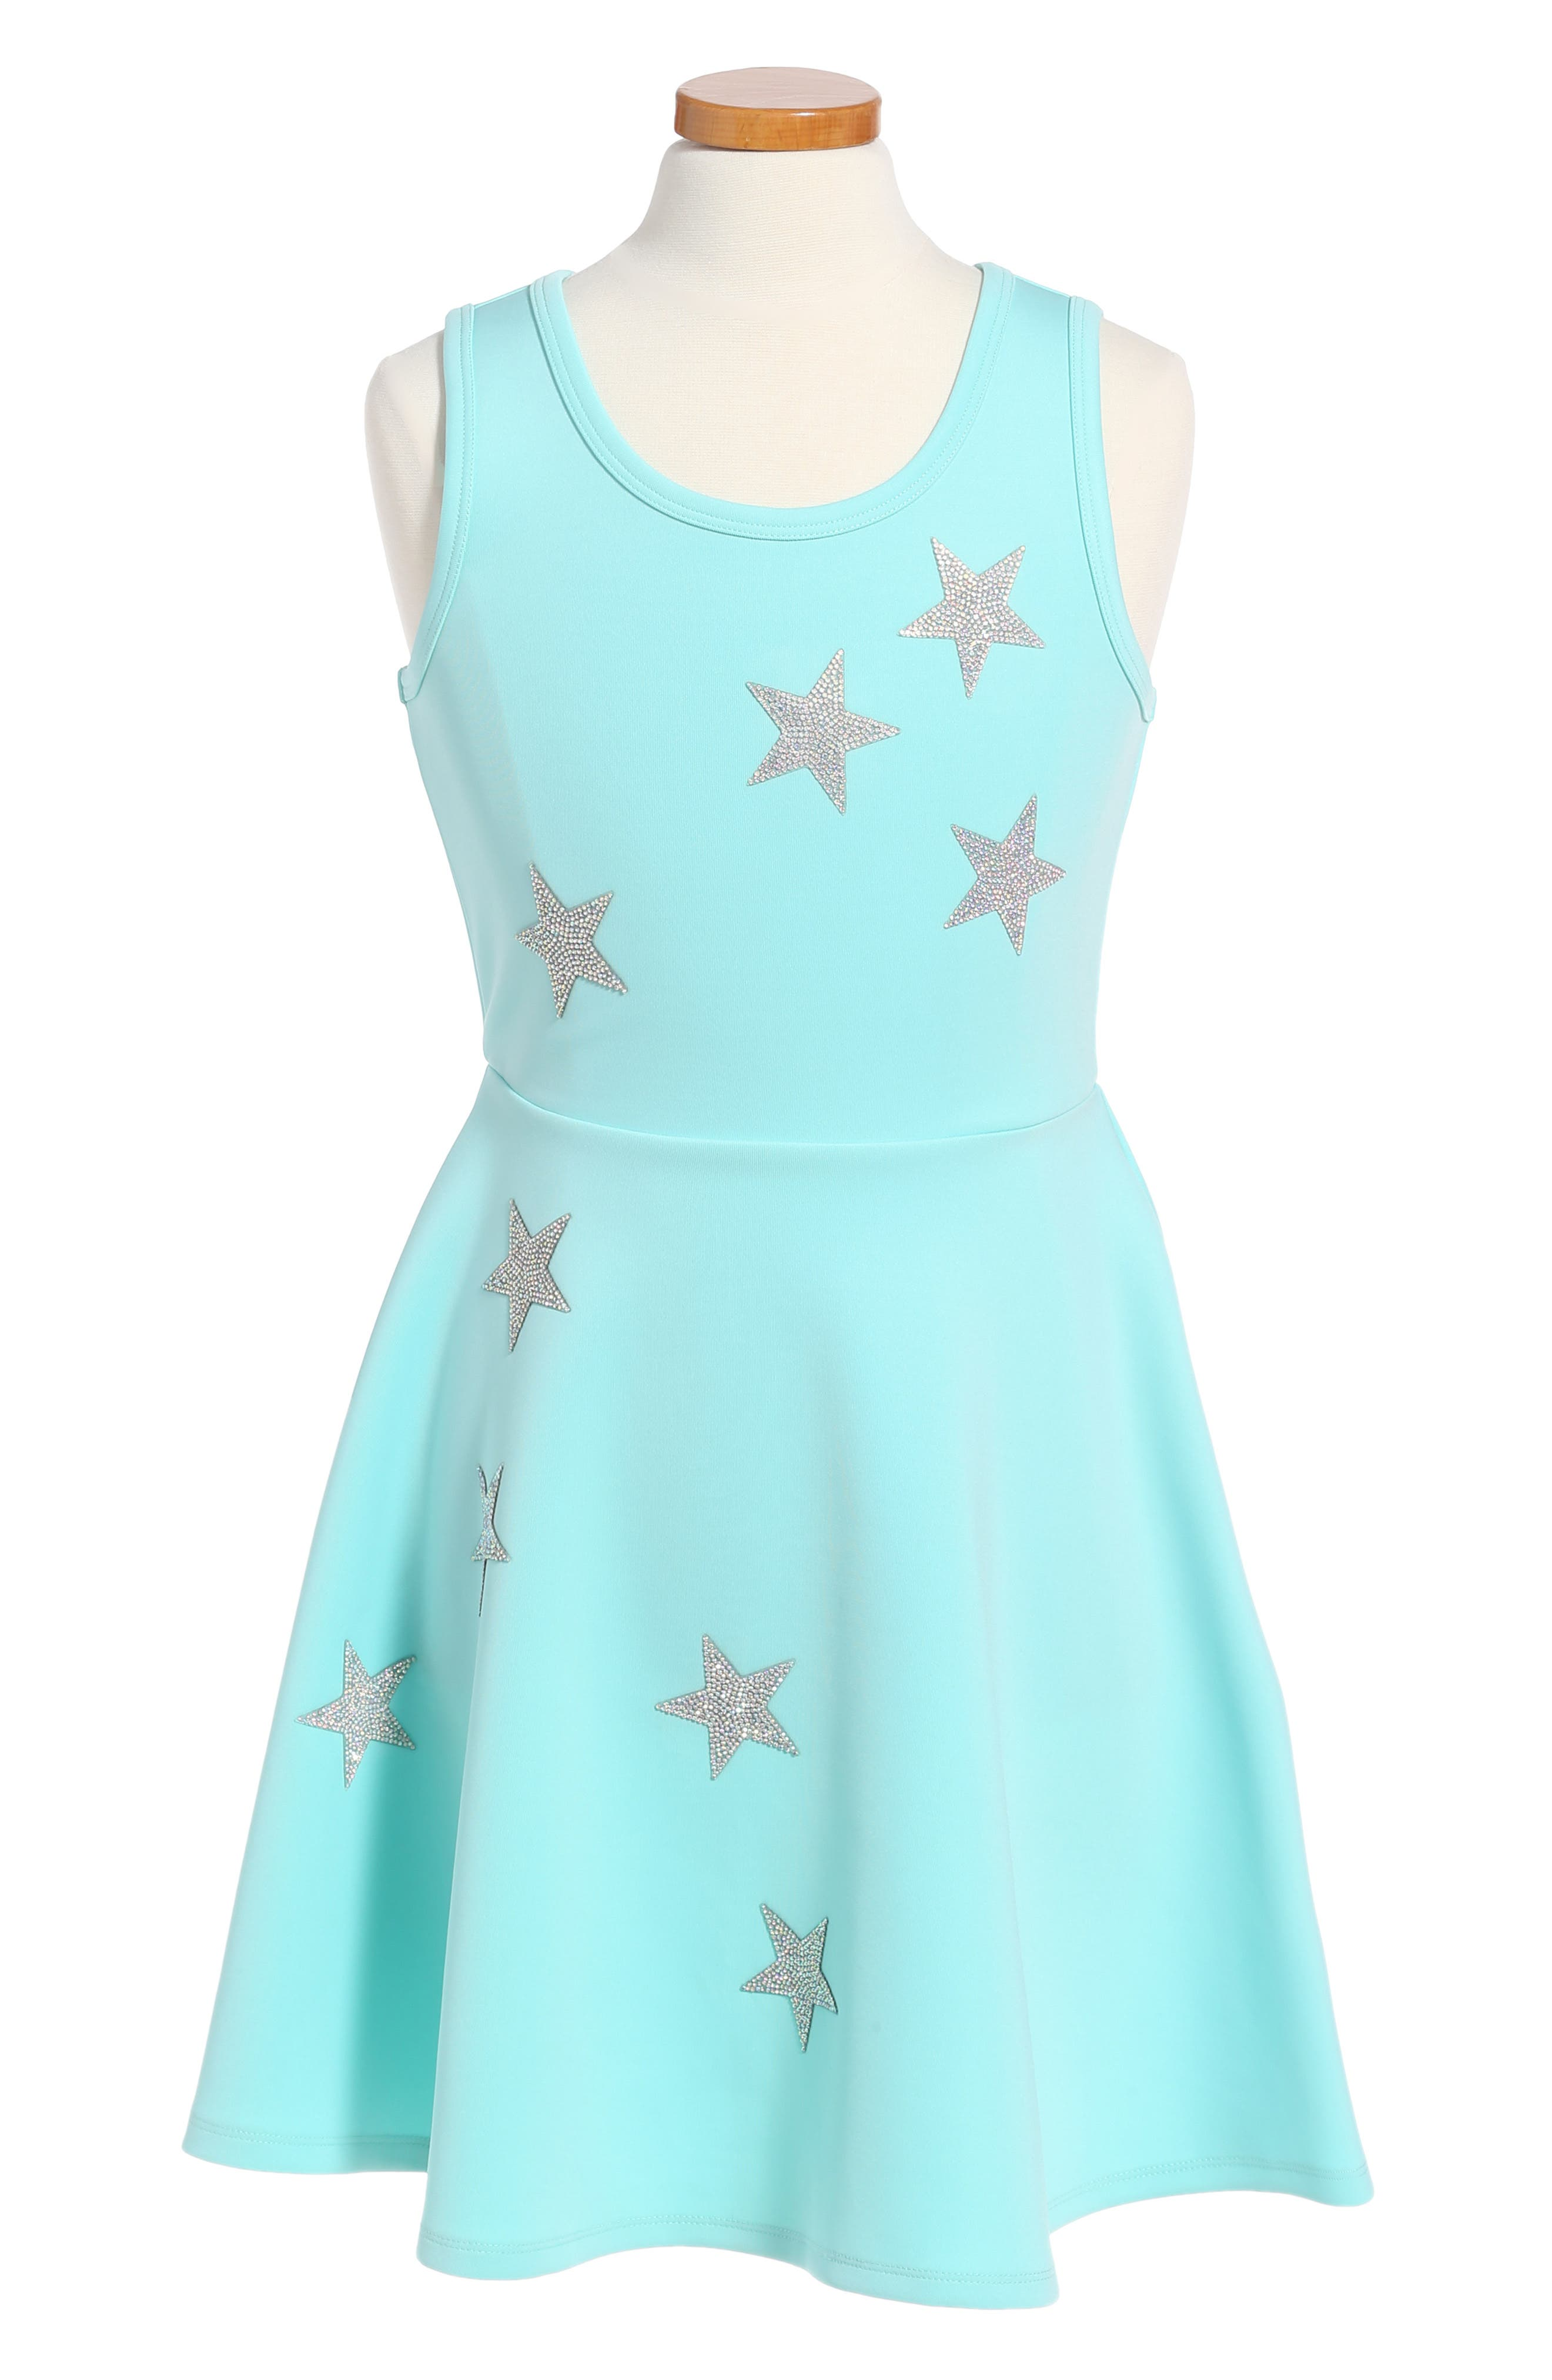 Alternate Image 1 Selected - Hannah Banana Star Appliqué Skater Dress (Big Girls)